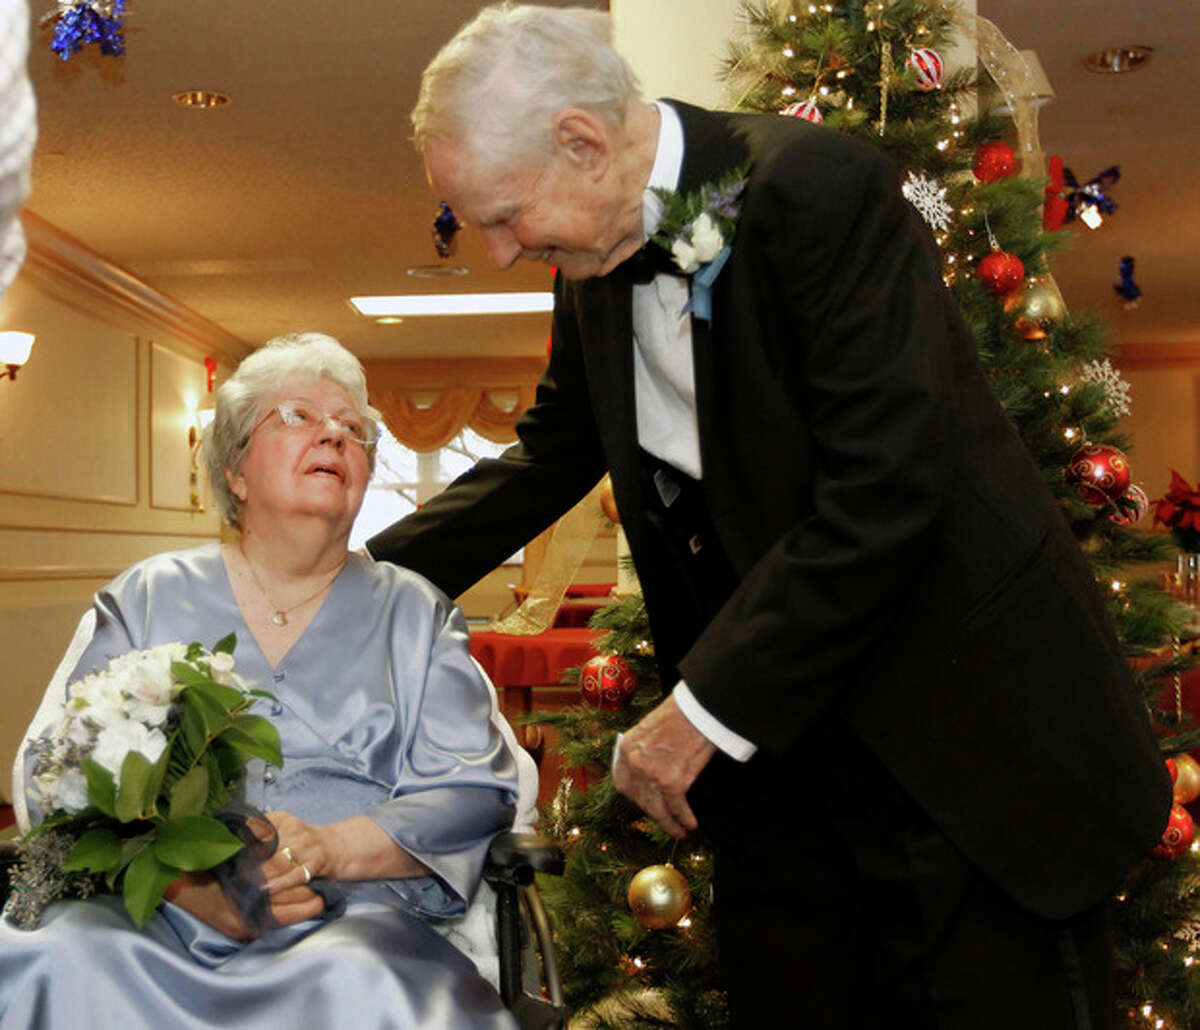 ADVANCE FOR WEEKEND EDITIONS DEC. 8-9 - In this Dec. 2, 2012 photo, Georgette Cheetham, left, with her husband Walter, renew their vows at Highlands Health Care Center in Cheshire, Conn. (AP Photo/The Republican-American, Christopher Massa)